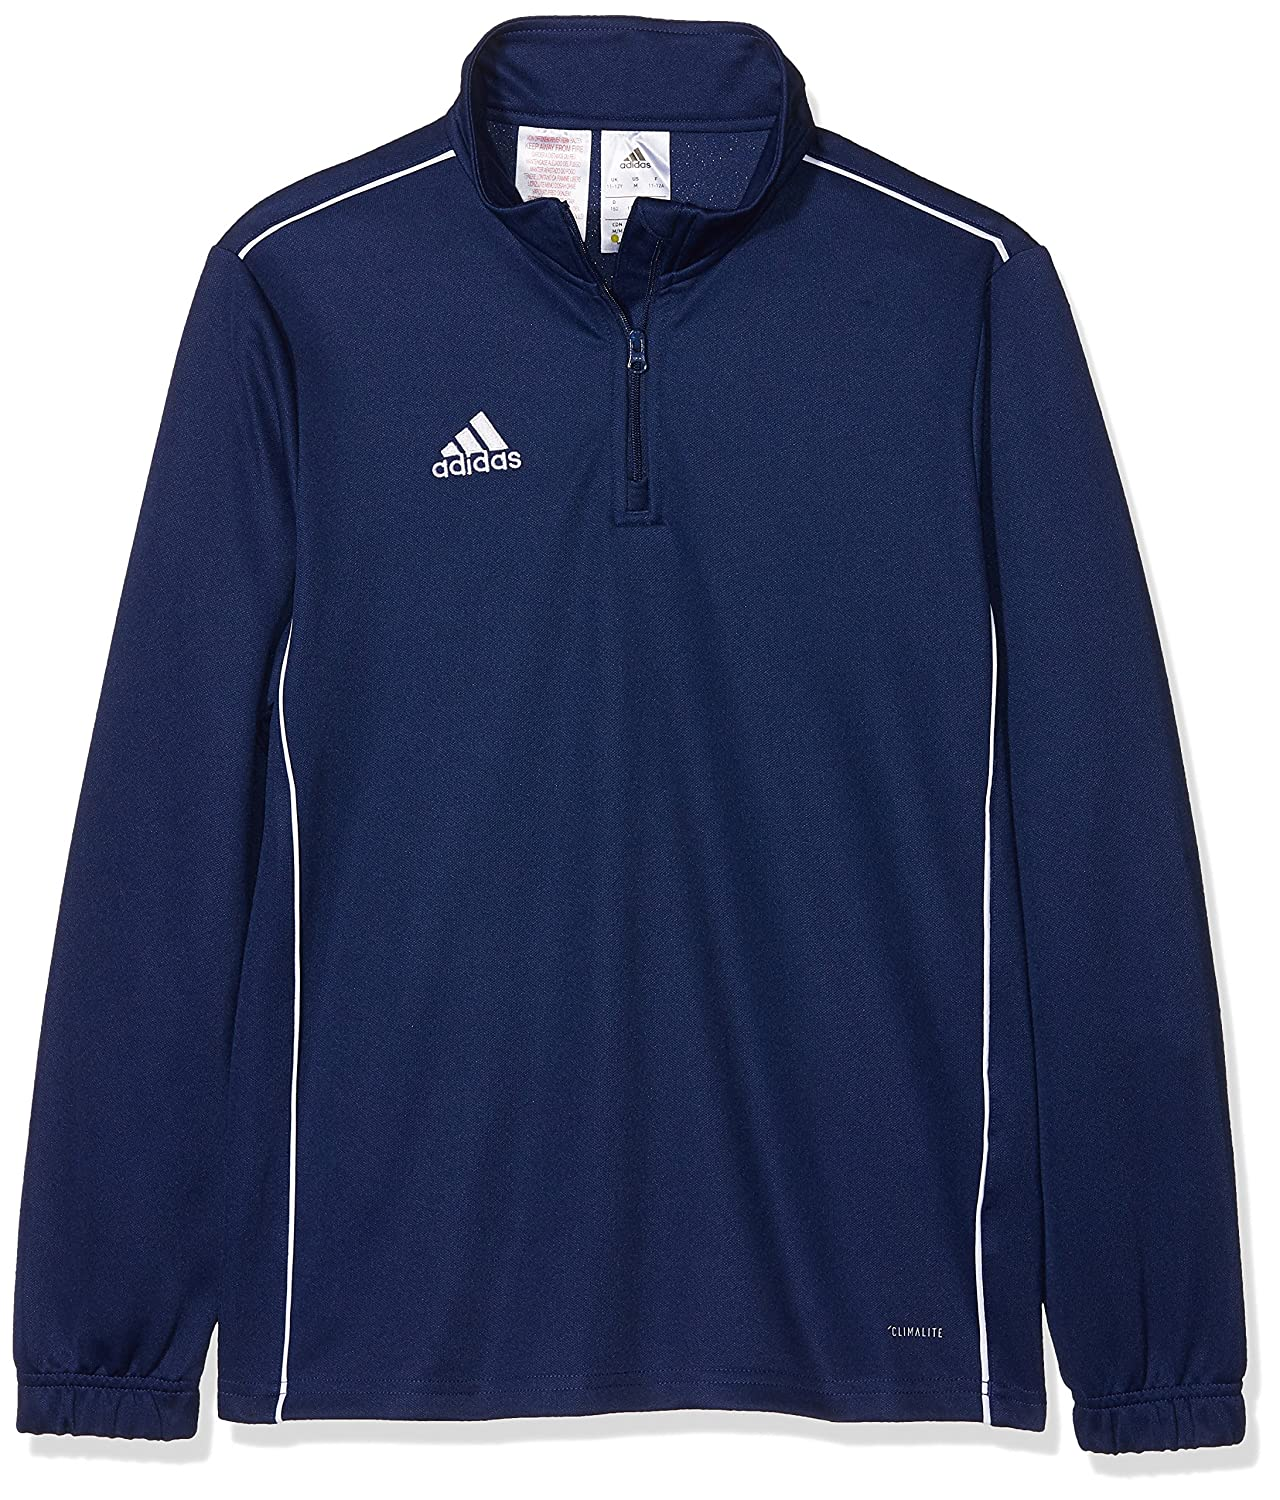 adidas Children's Training Top – CORE18, Children's Children's